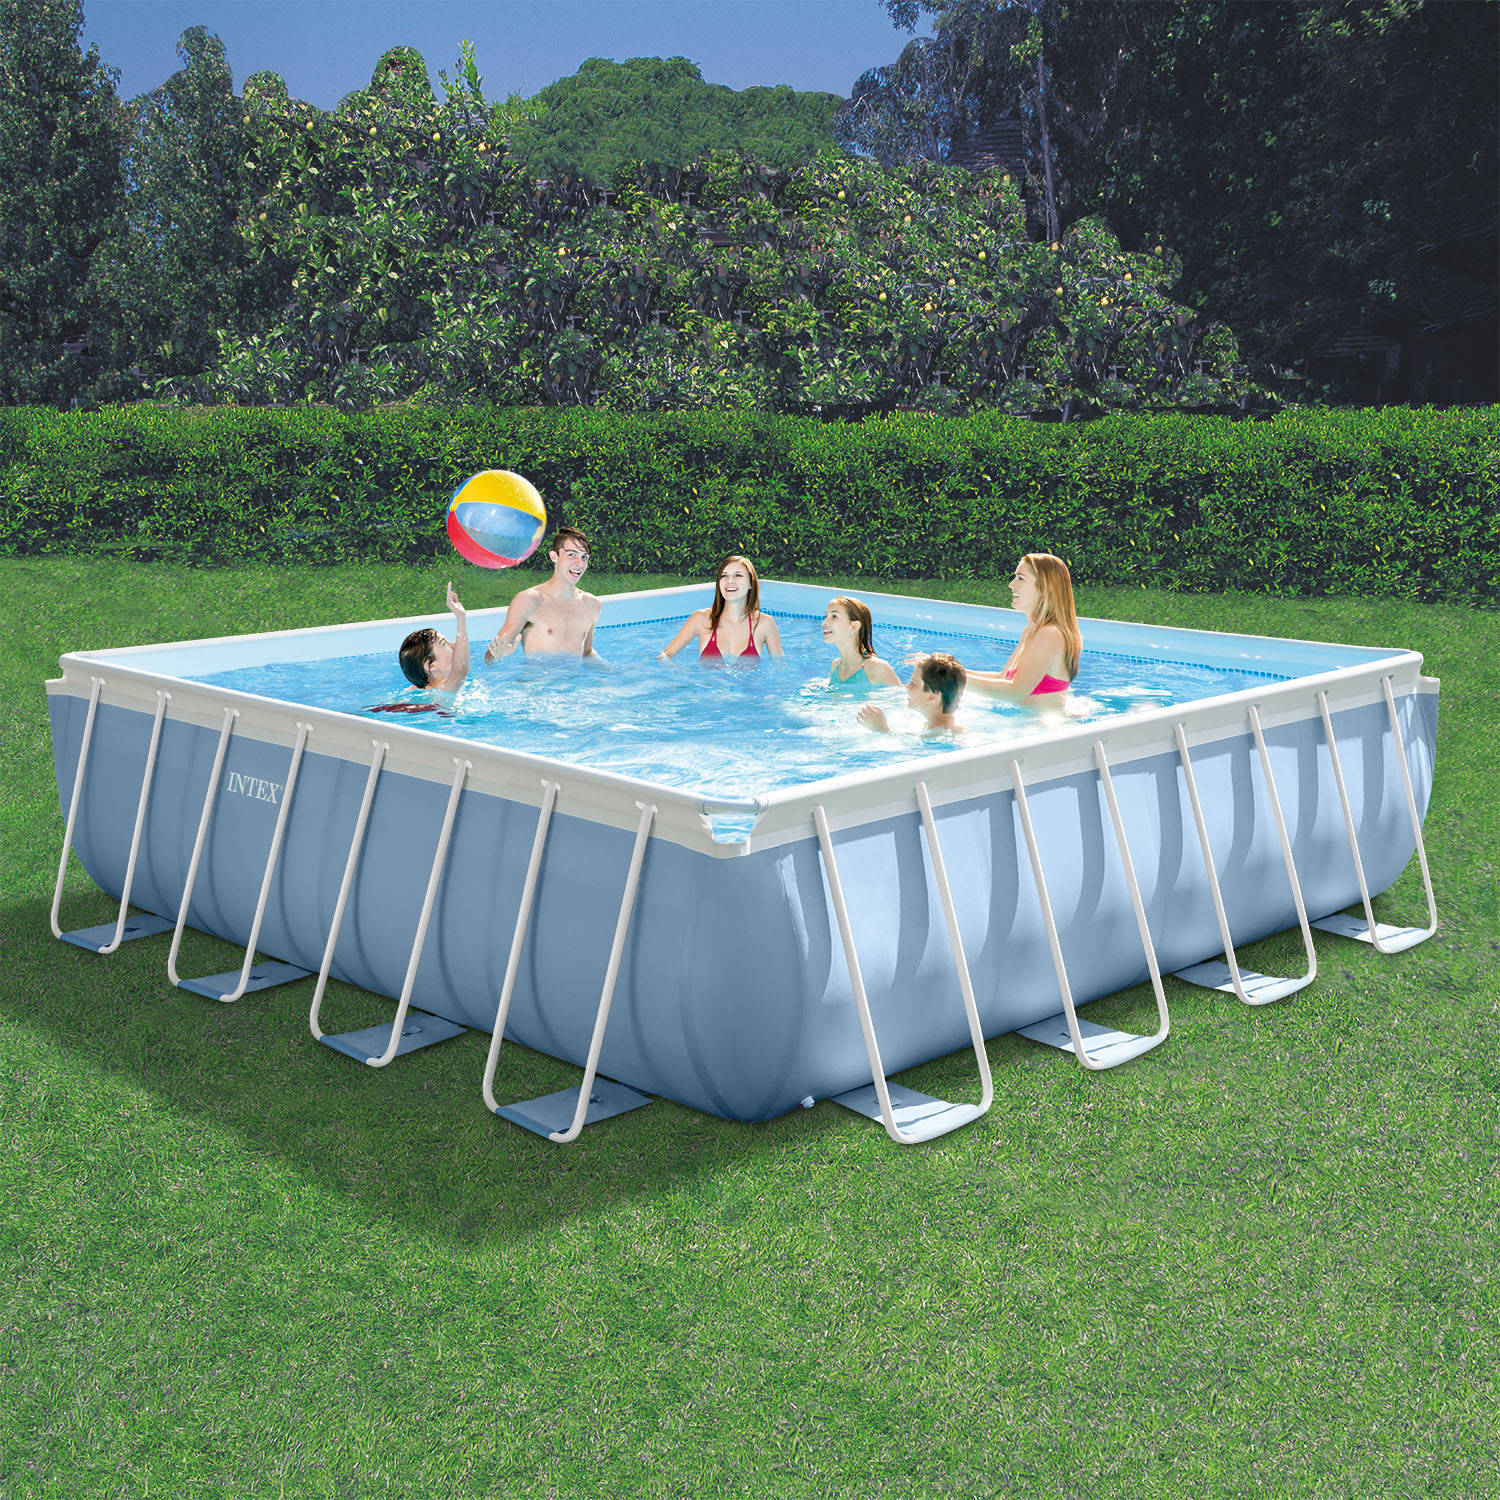 "Intex 16' x 16' x 48"" Prism Frame MAX Above Ground Swimming Pool with Filter Pump by Above Ground Pools"